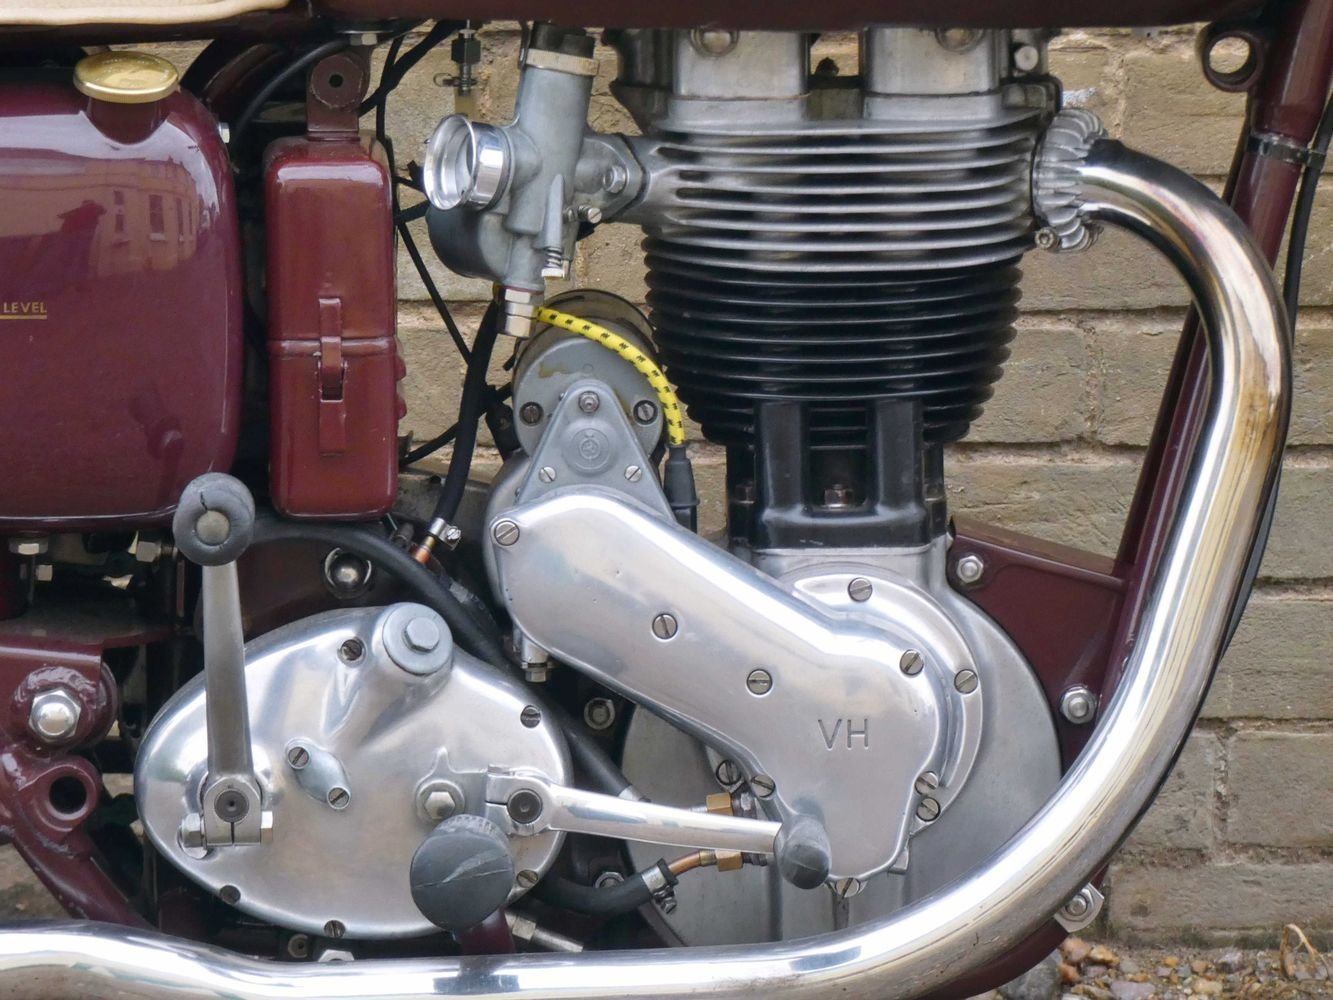 1954 Ariel VH 500cc For Sale (picture 2 of 6)